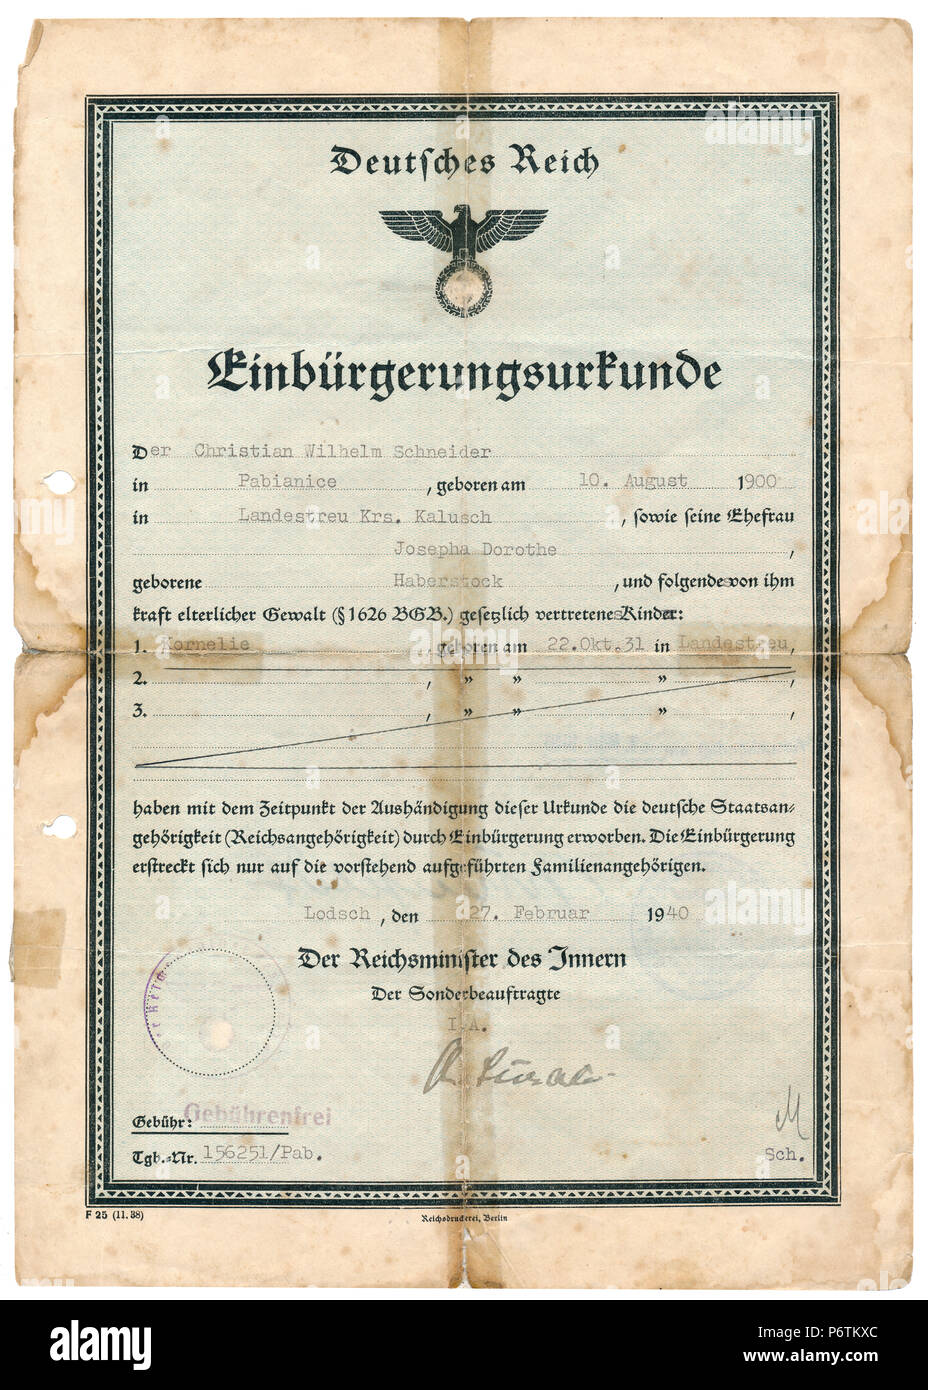 Certificate of Nationality, 1940, Third Reich / Nazi Germany Period - Stock Image